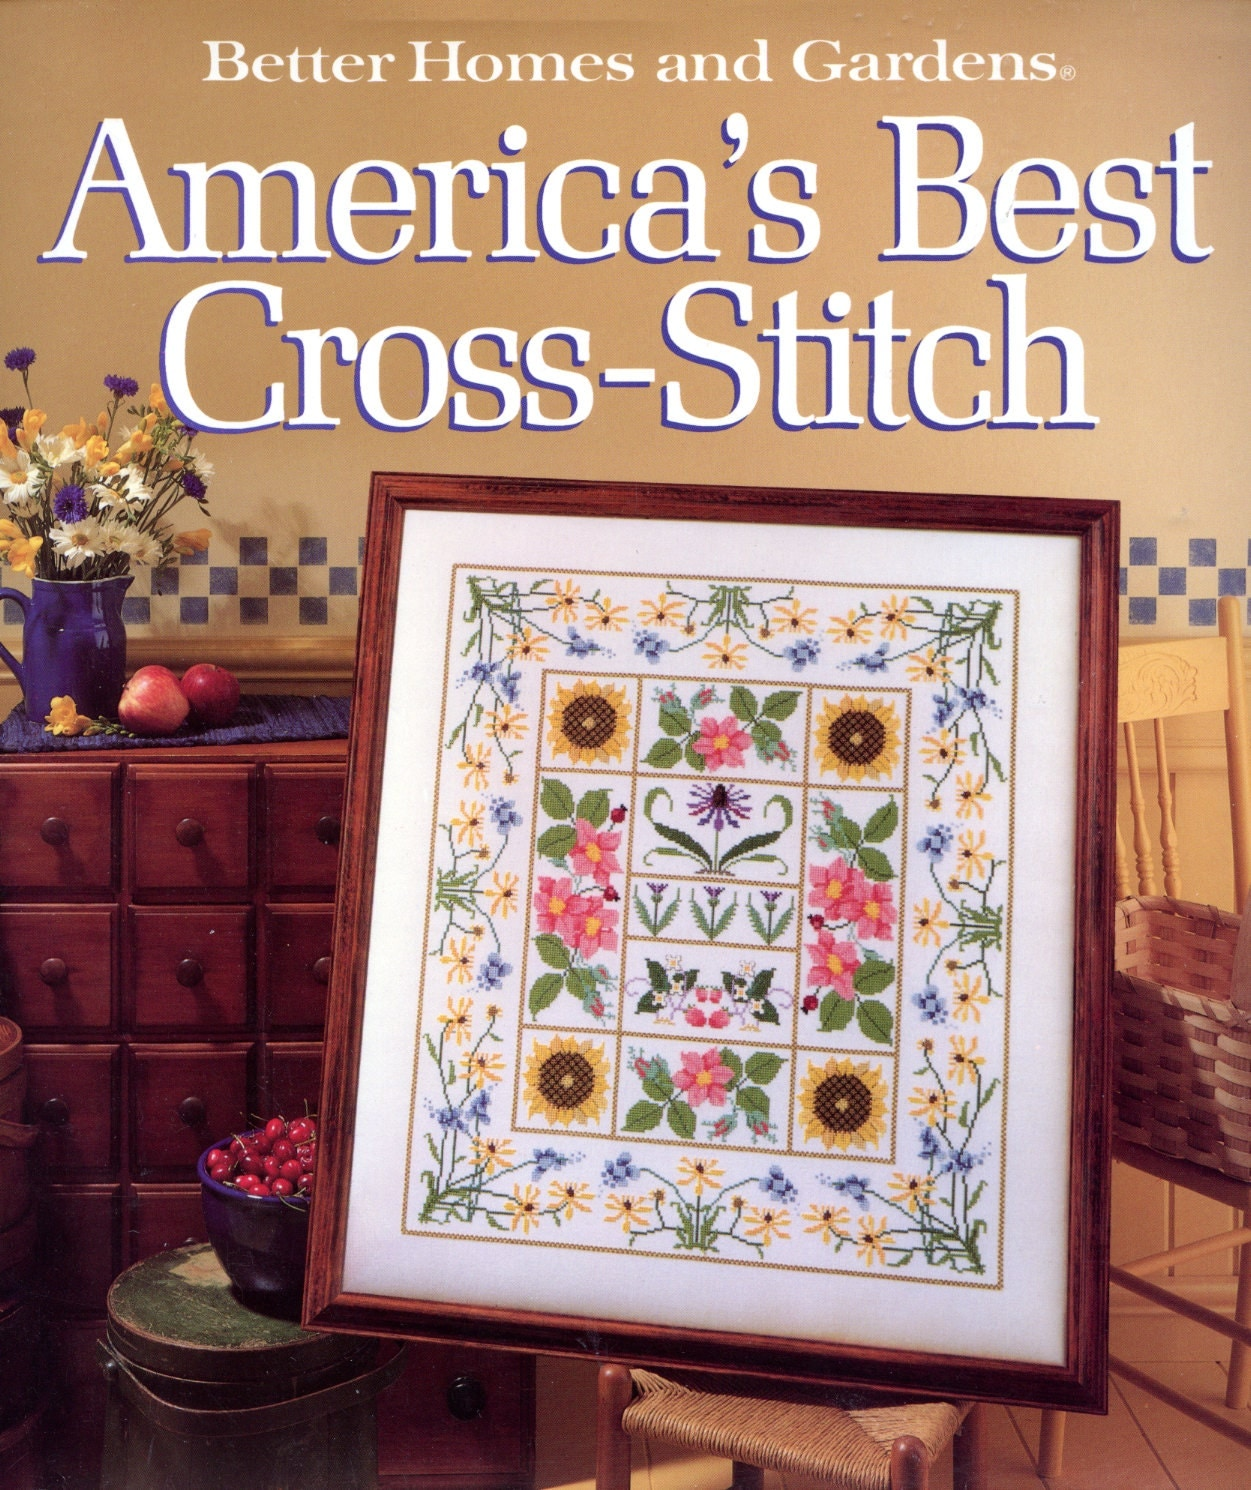 Better homes and gardens america 39 s best cross stitch for Americas best home builders